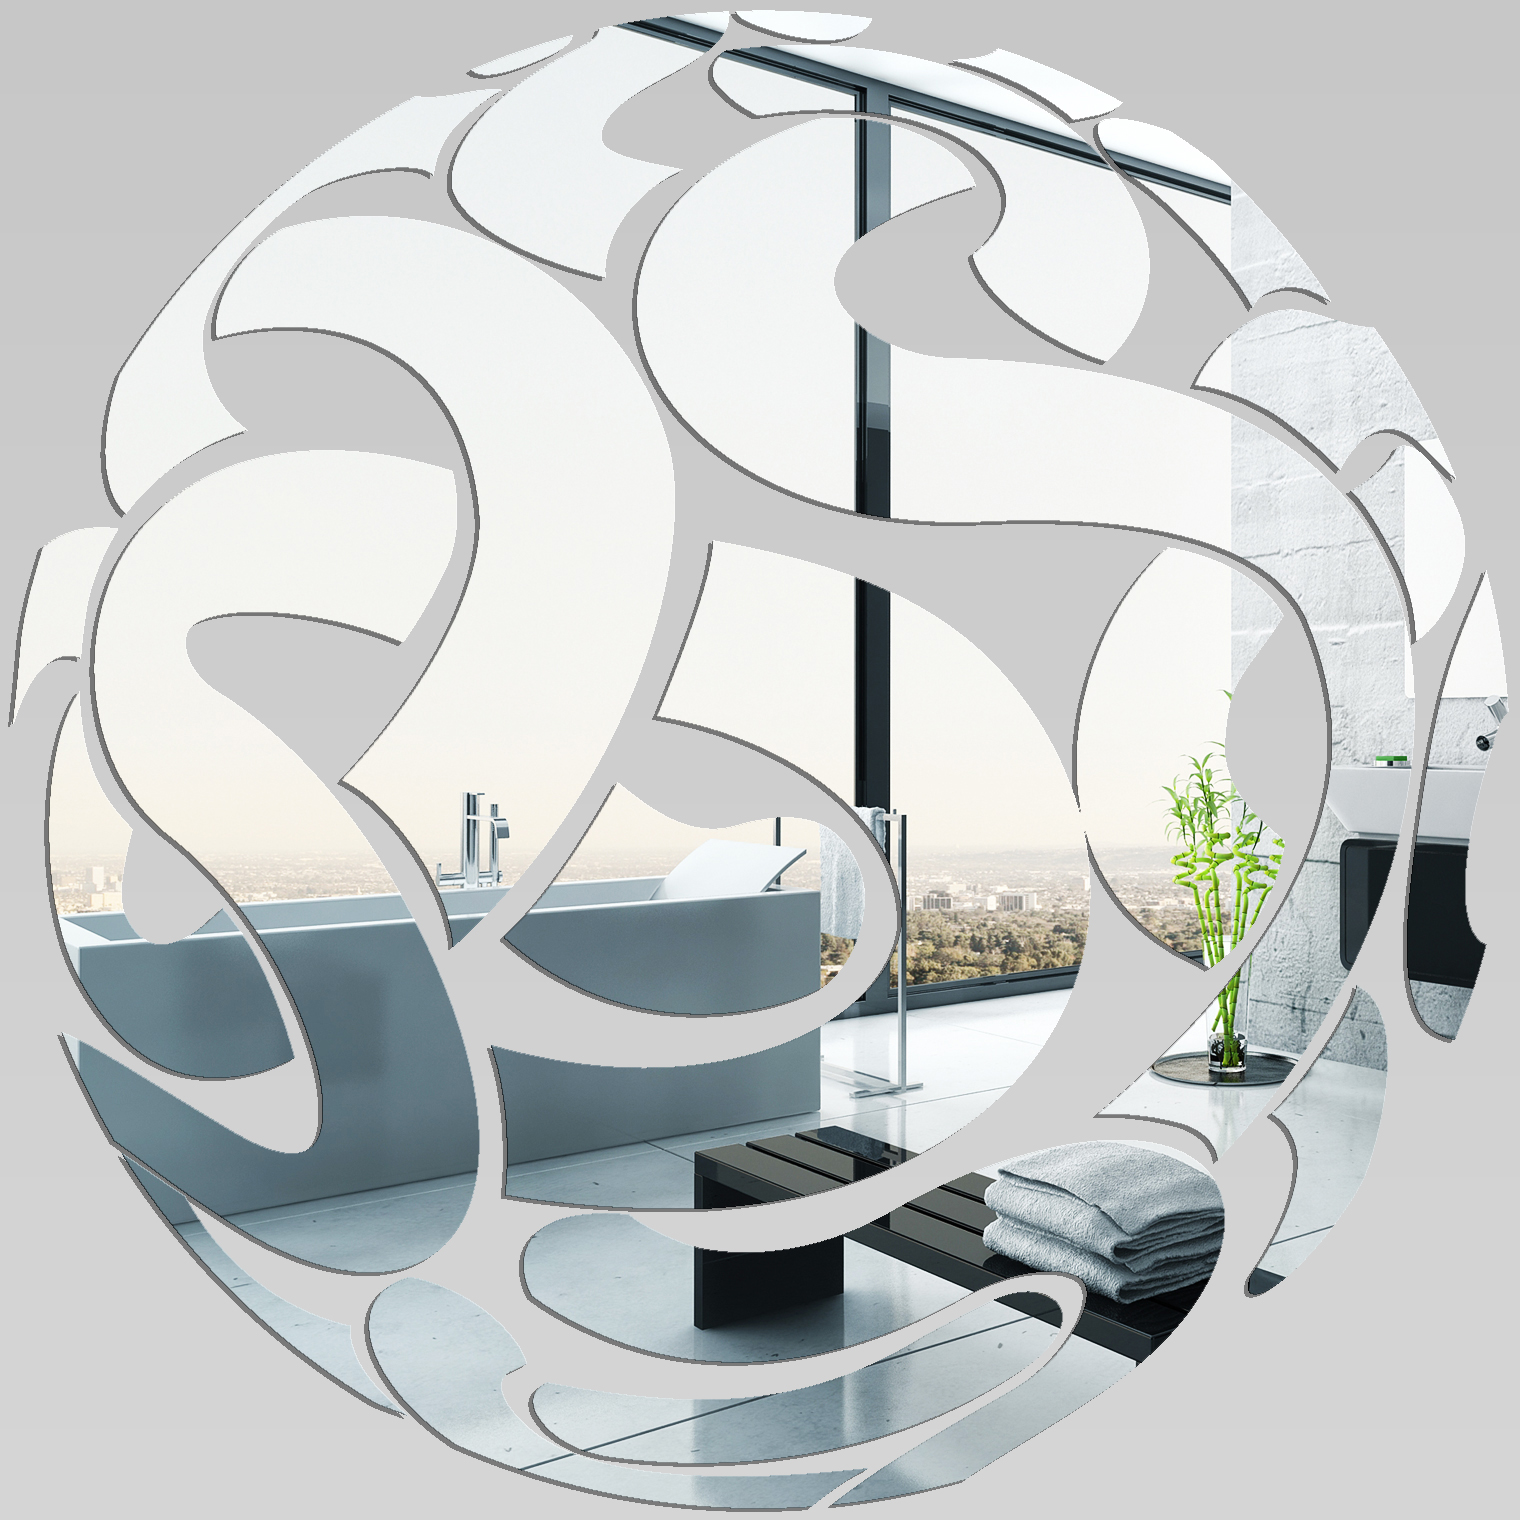 miroir plexiglass acrylique rond design pas cher. Black Bedroom Furniture Sets. Home Design Ideas